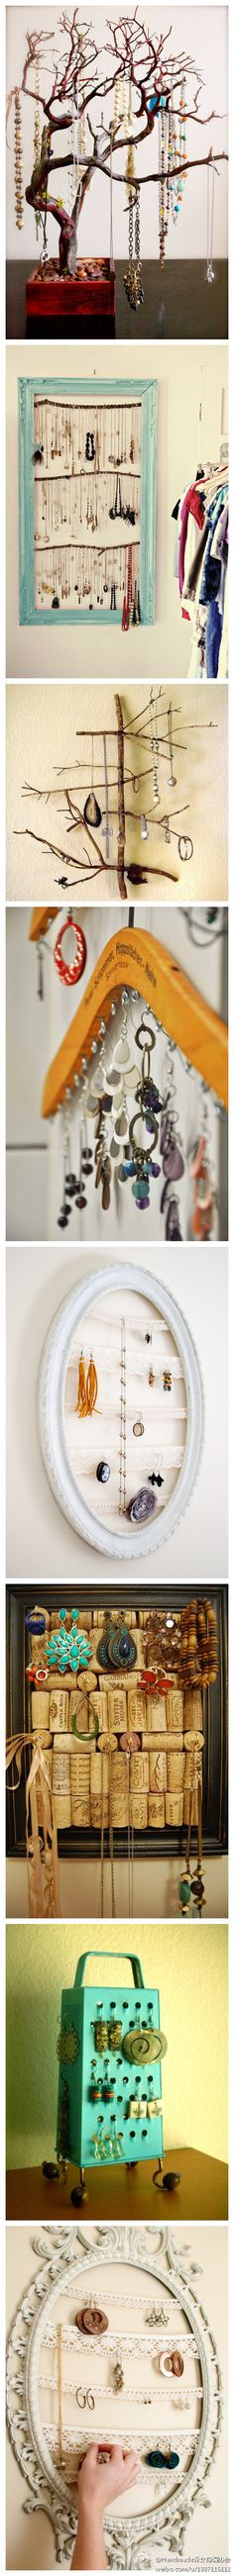 jewelry holder ideas...I like the wine cork one the most!